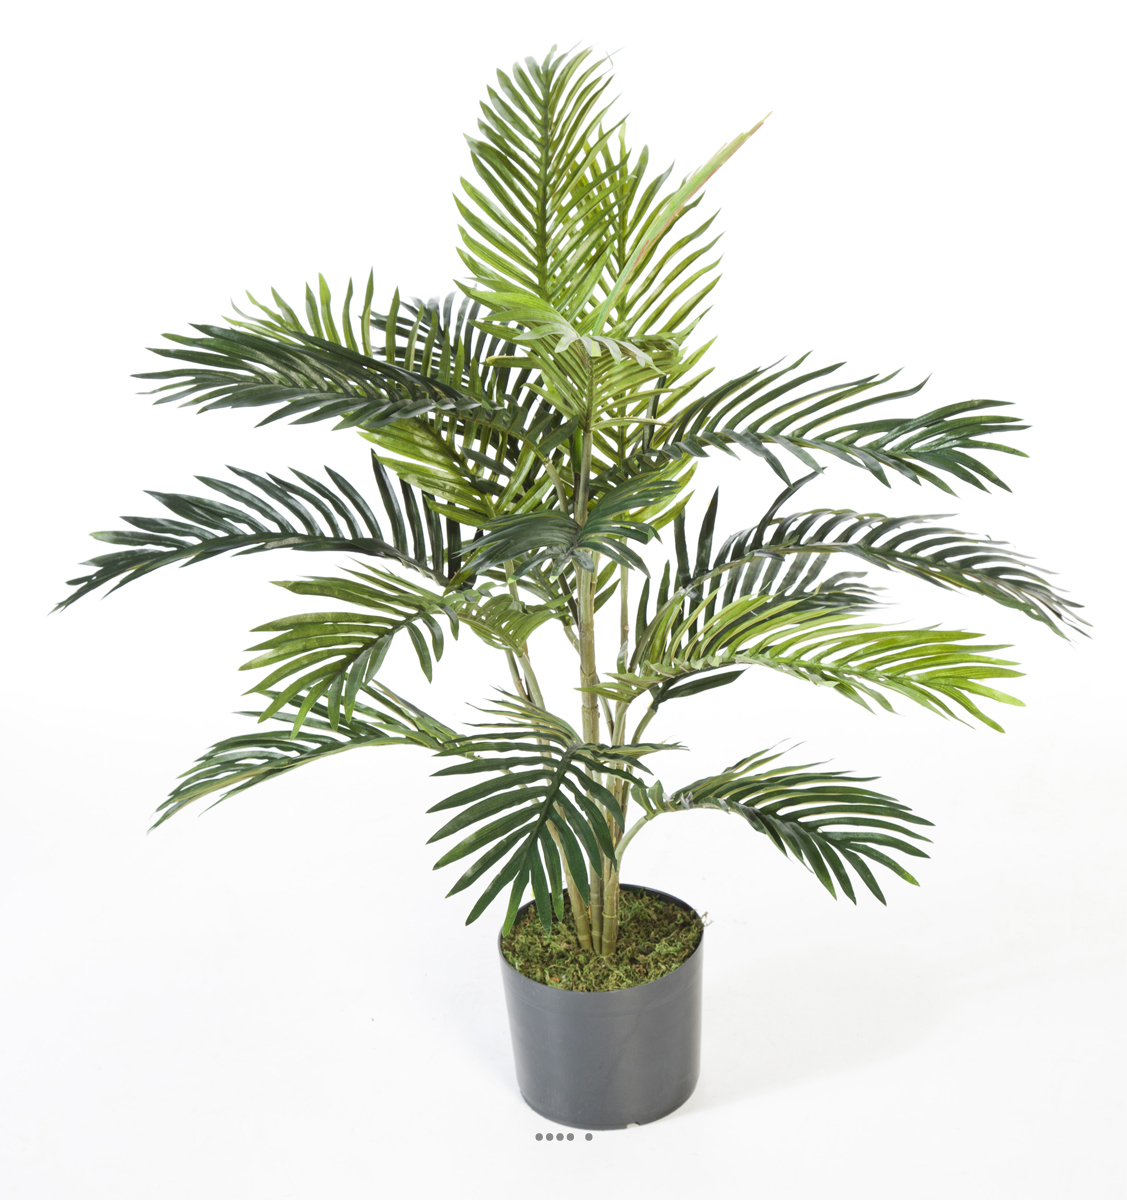 palmier areca artificiel en pot du site artificielles